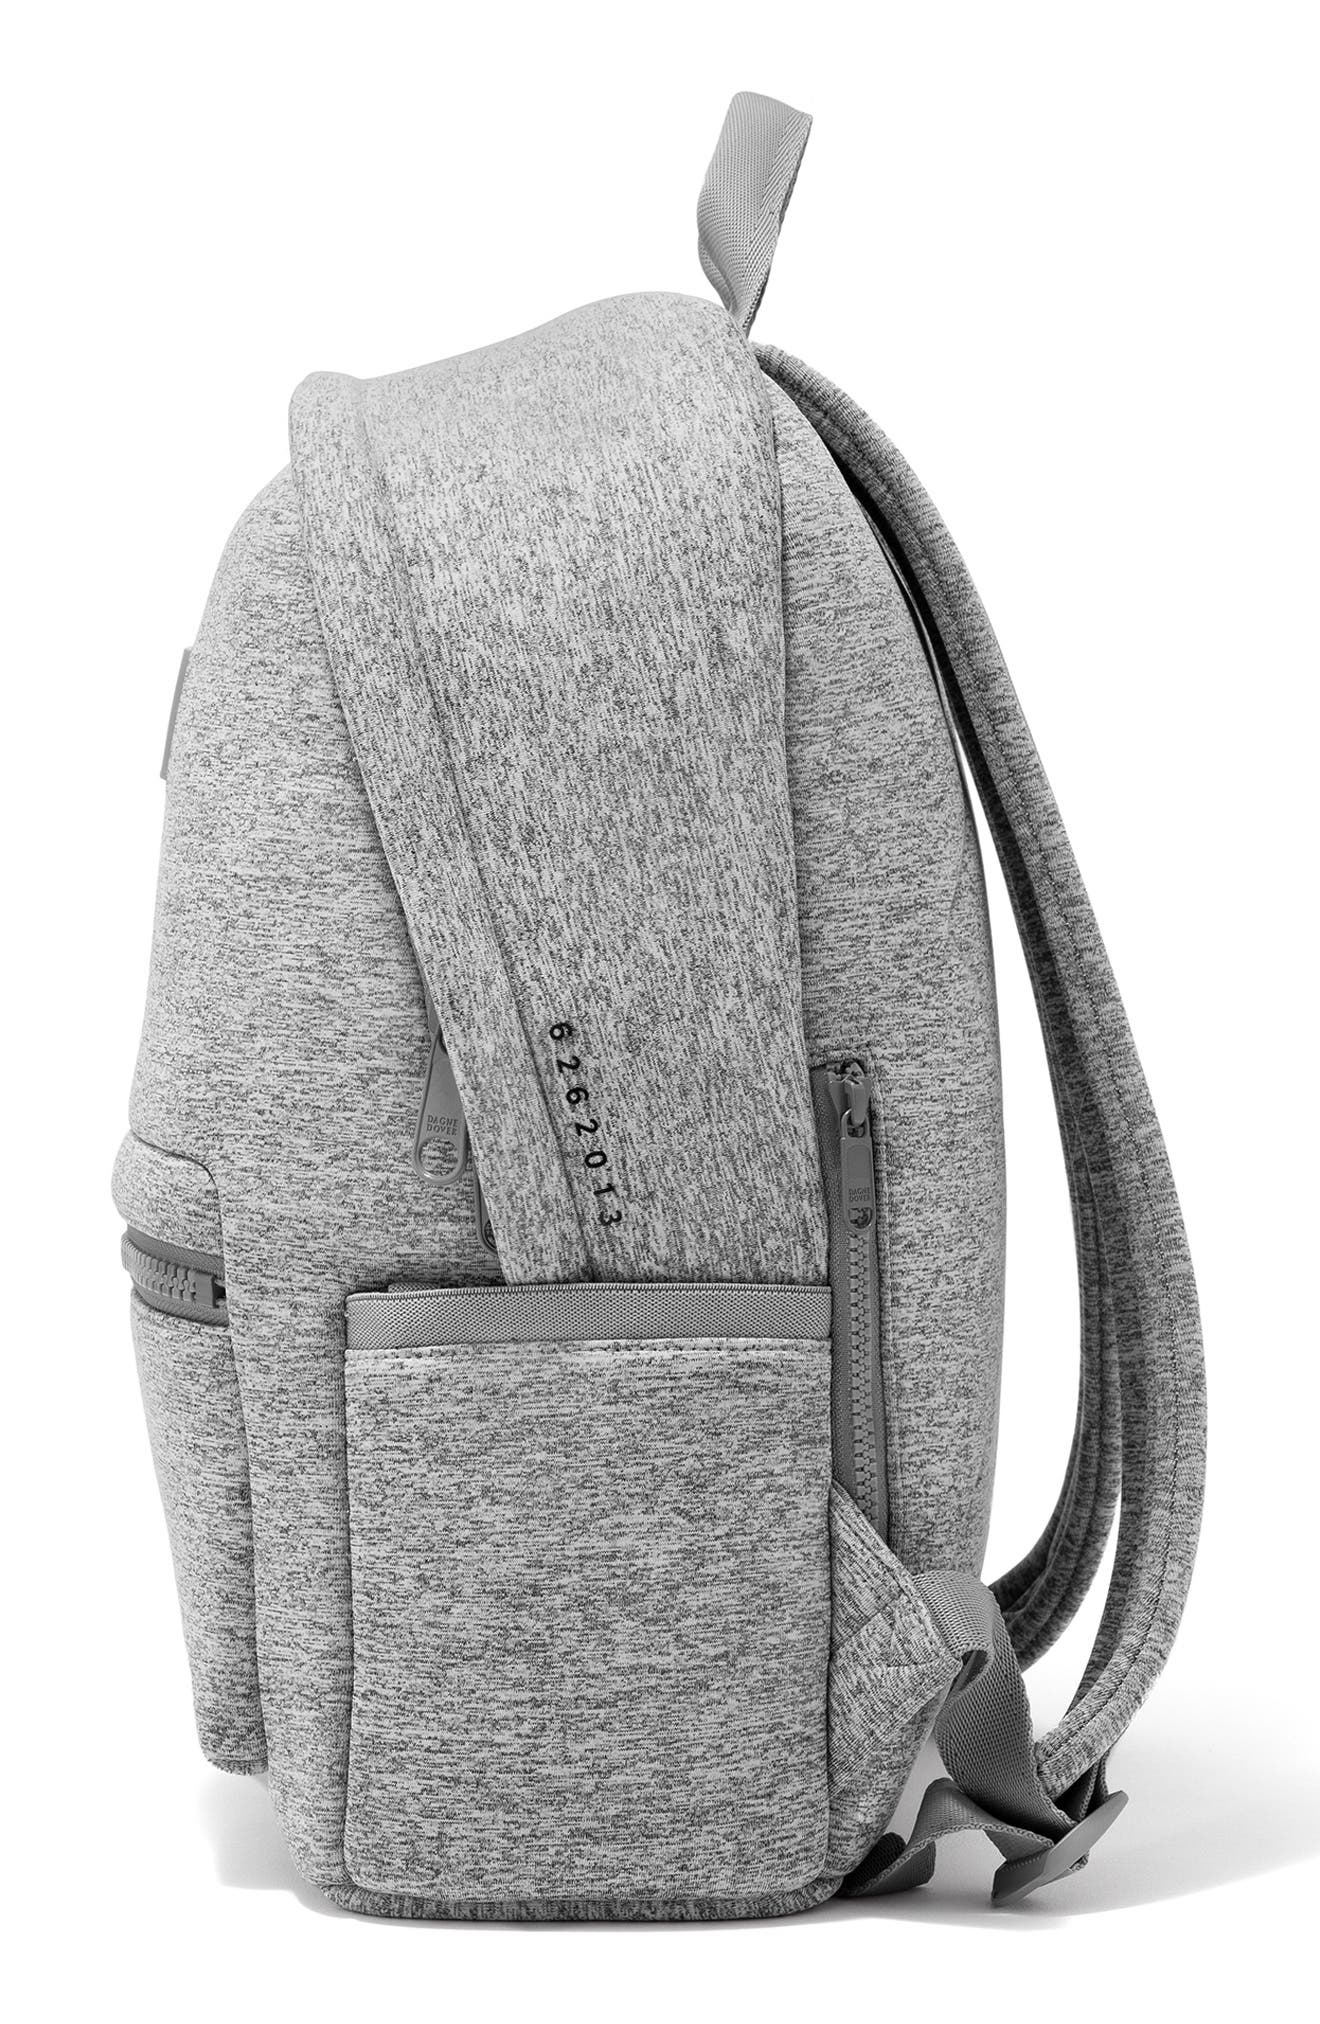 365 Dakota Neoprene Backpack,                             Alternate thumbnail 4, color,                             HEATHER GREY